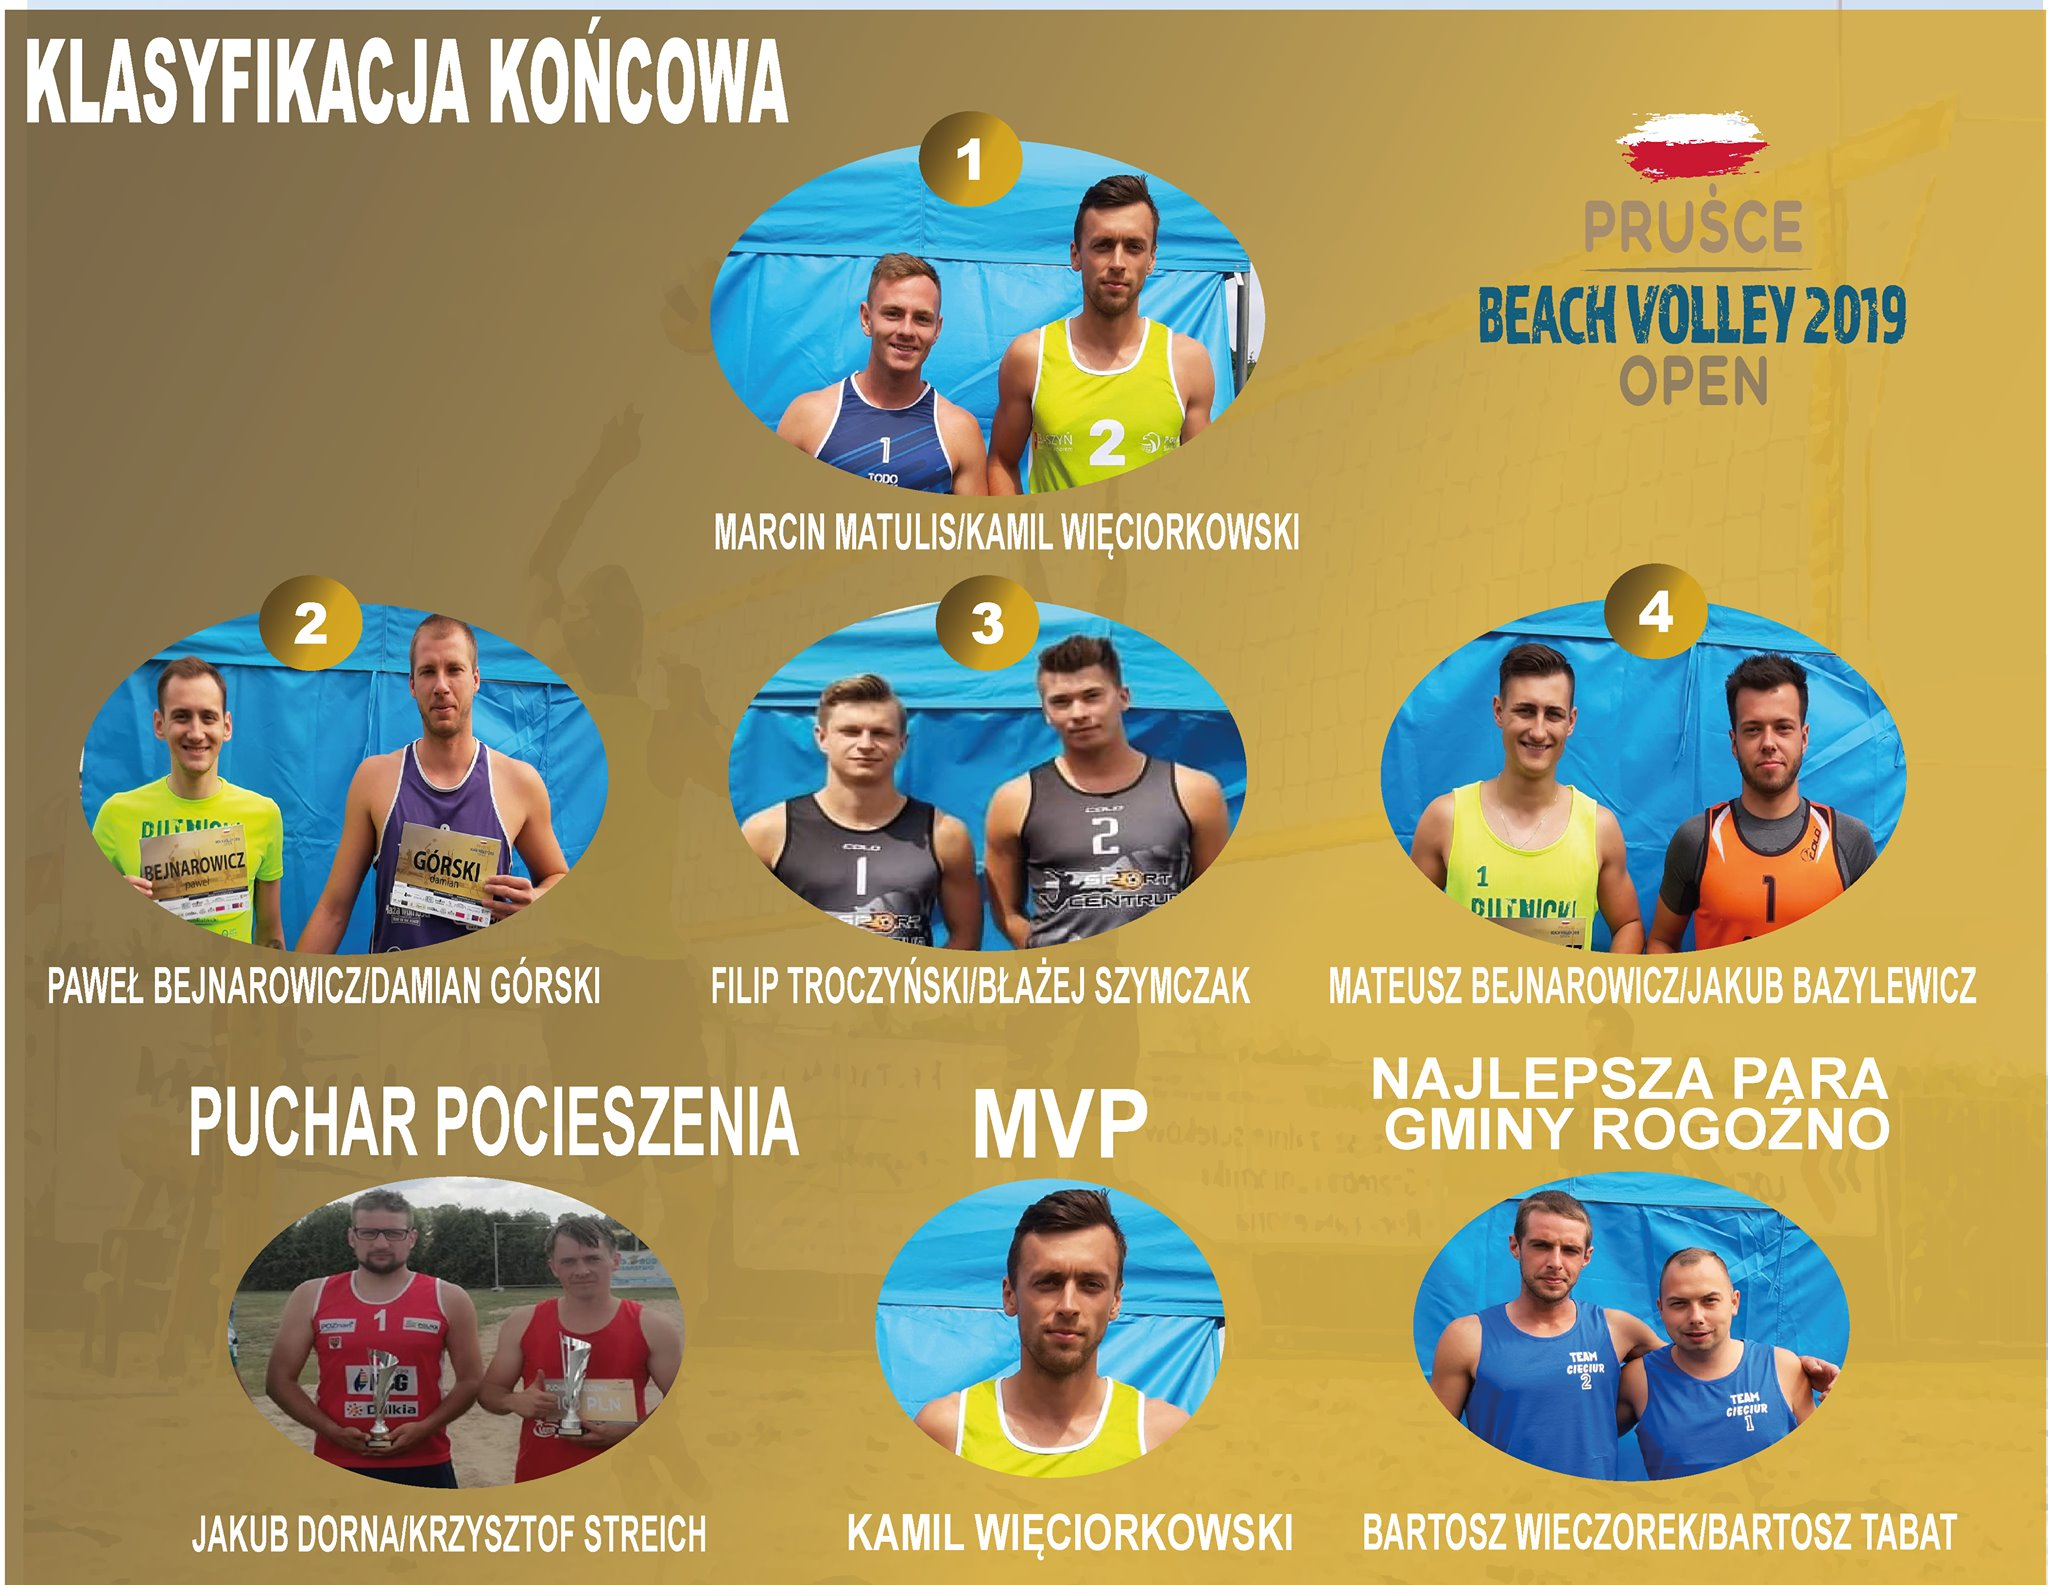 prusce beach volley 2019